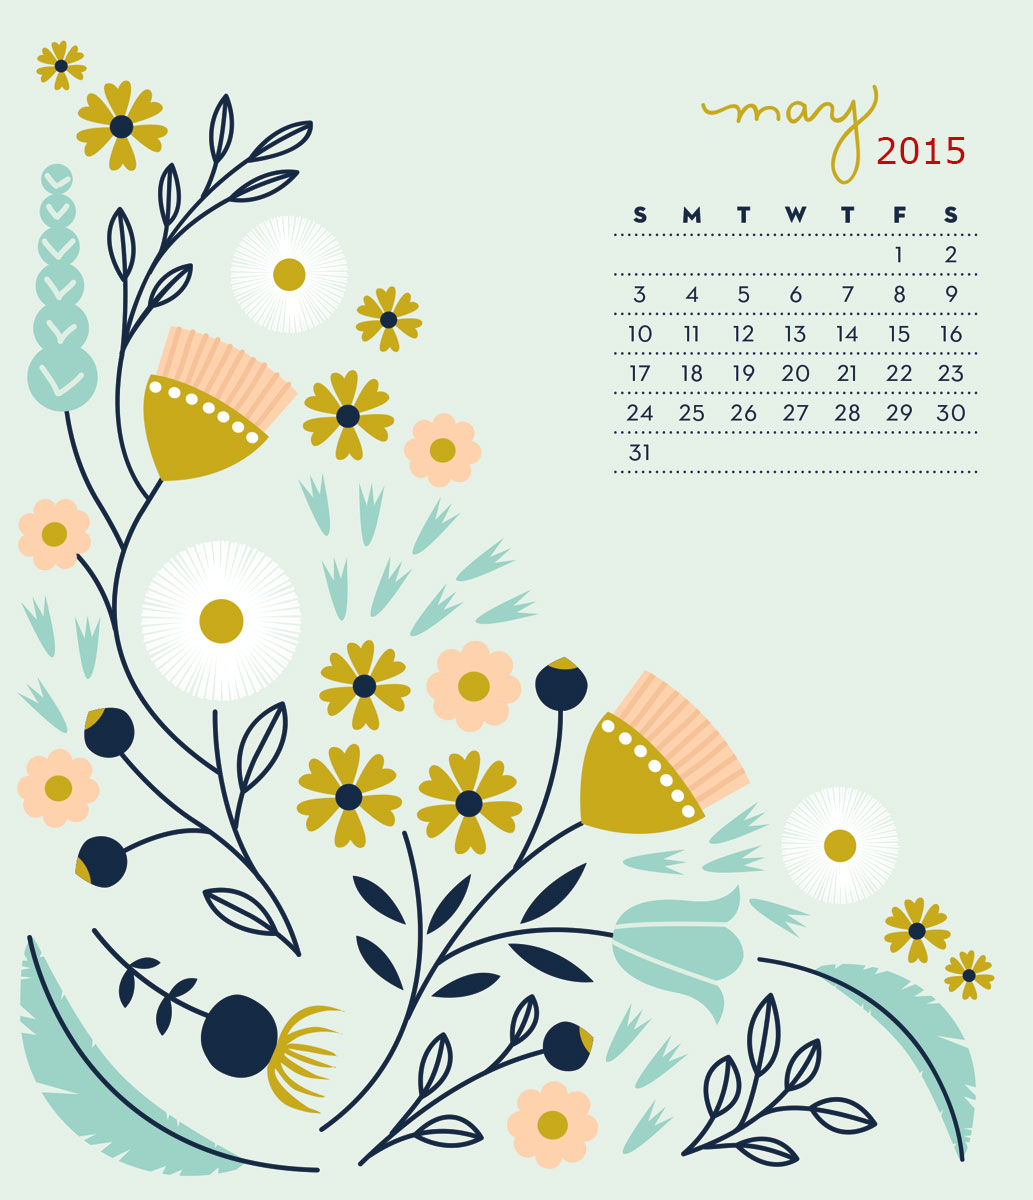 48] Desktop Wallpapers Calendar May 2015 on WallpaperSafari 1033x1200